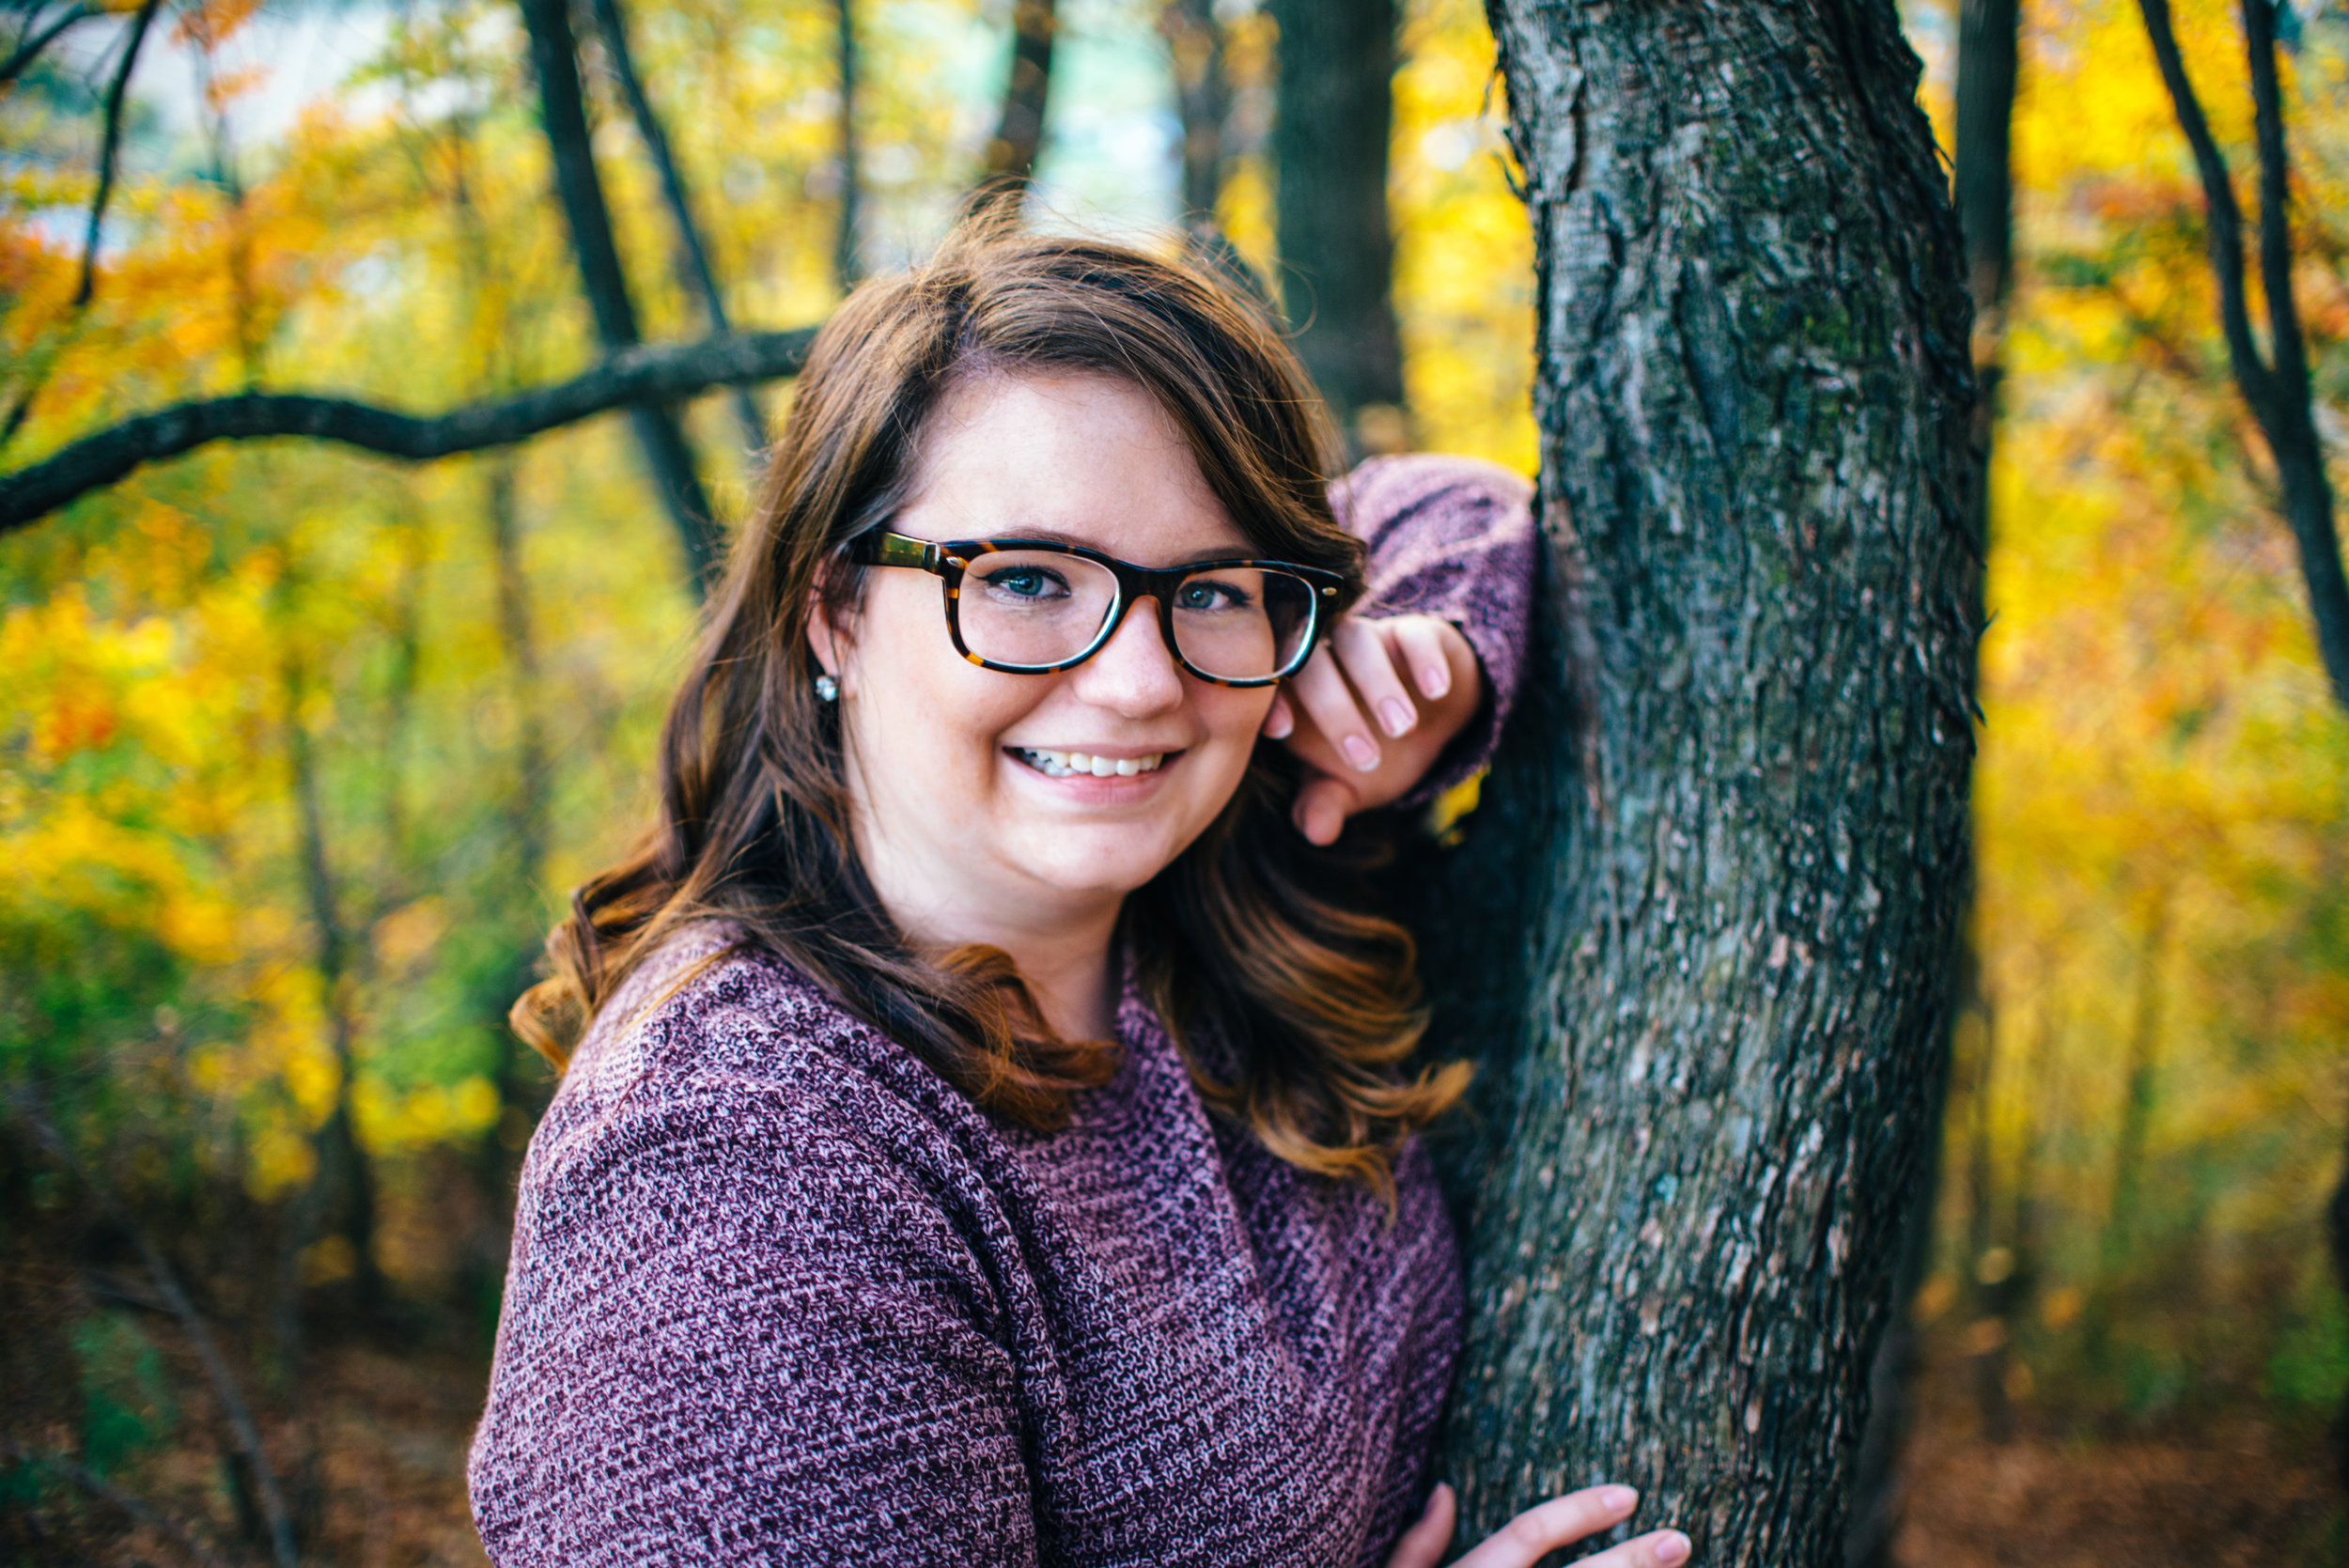 high school senior photo of girl with glasses leaning against a tree in the fall at Chimney Rocks in Hollidaysburg PA